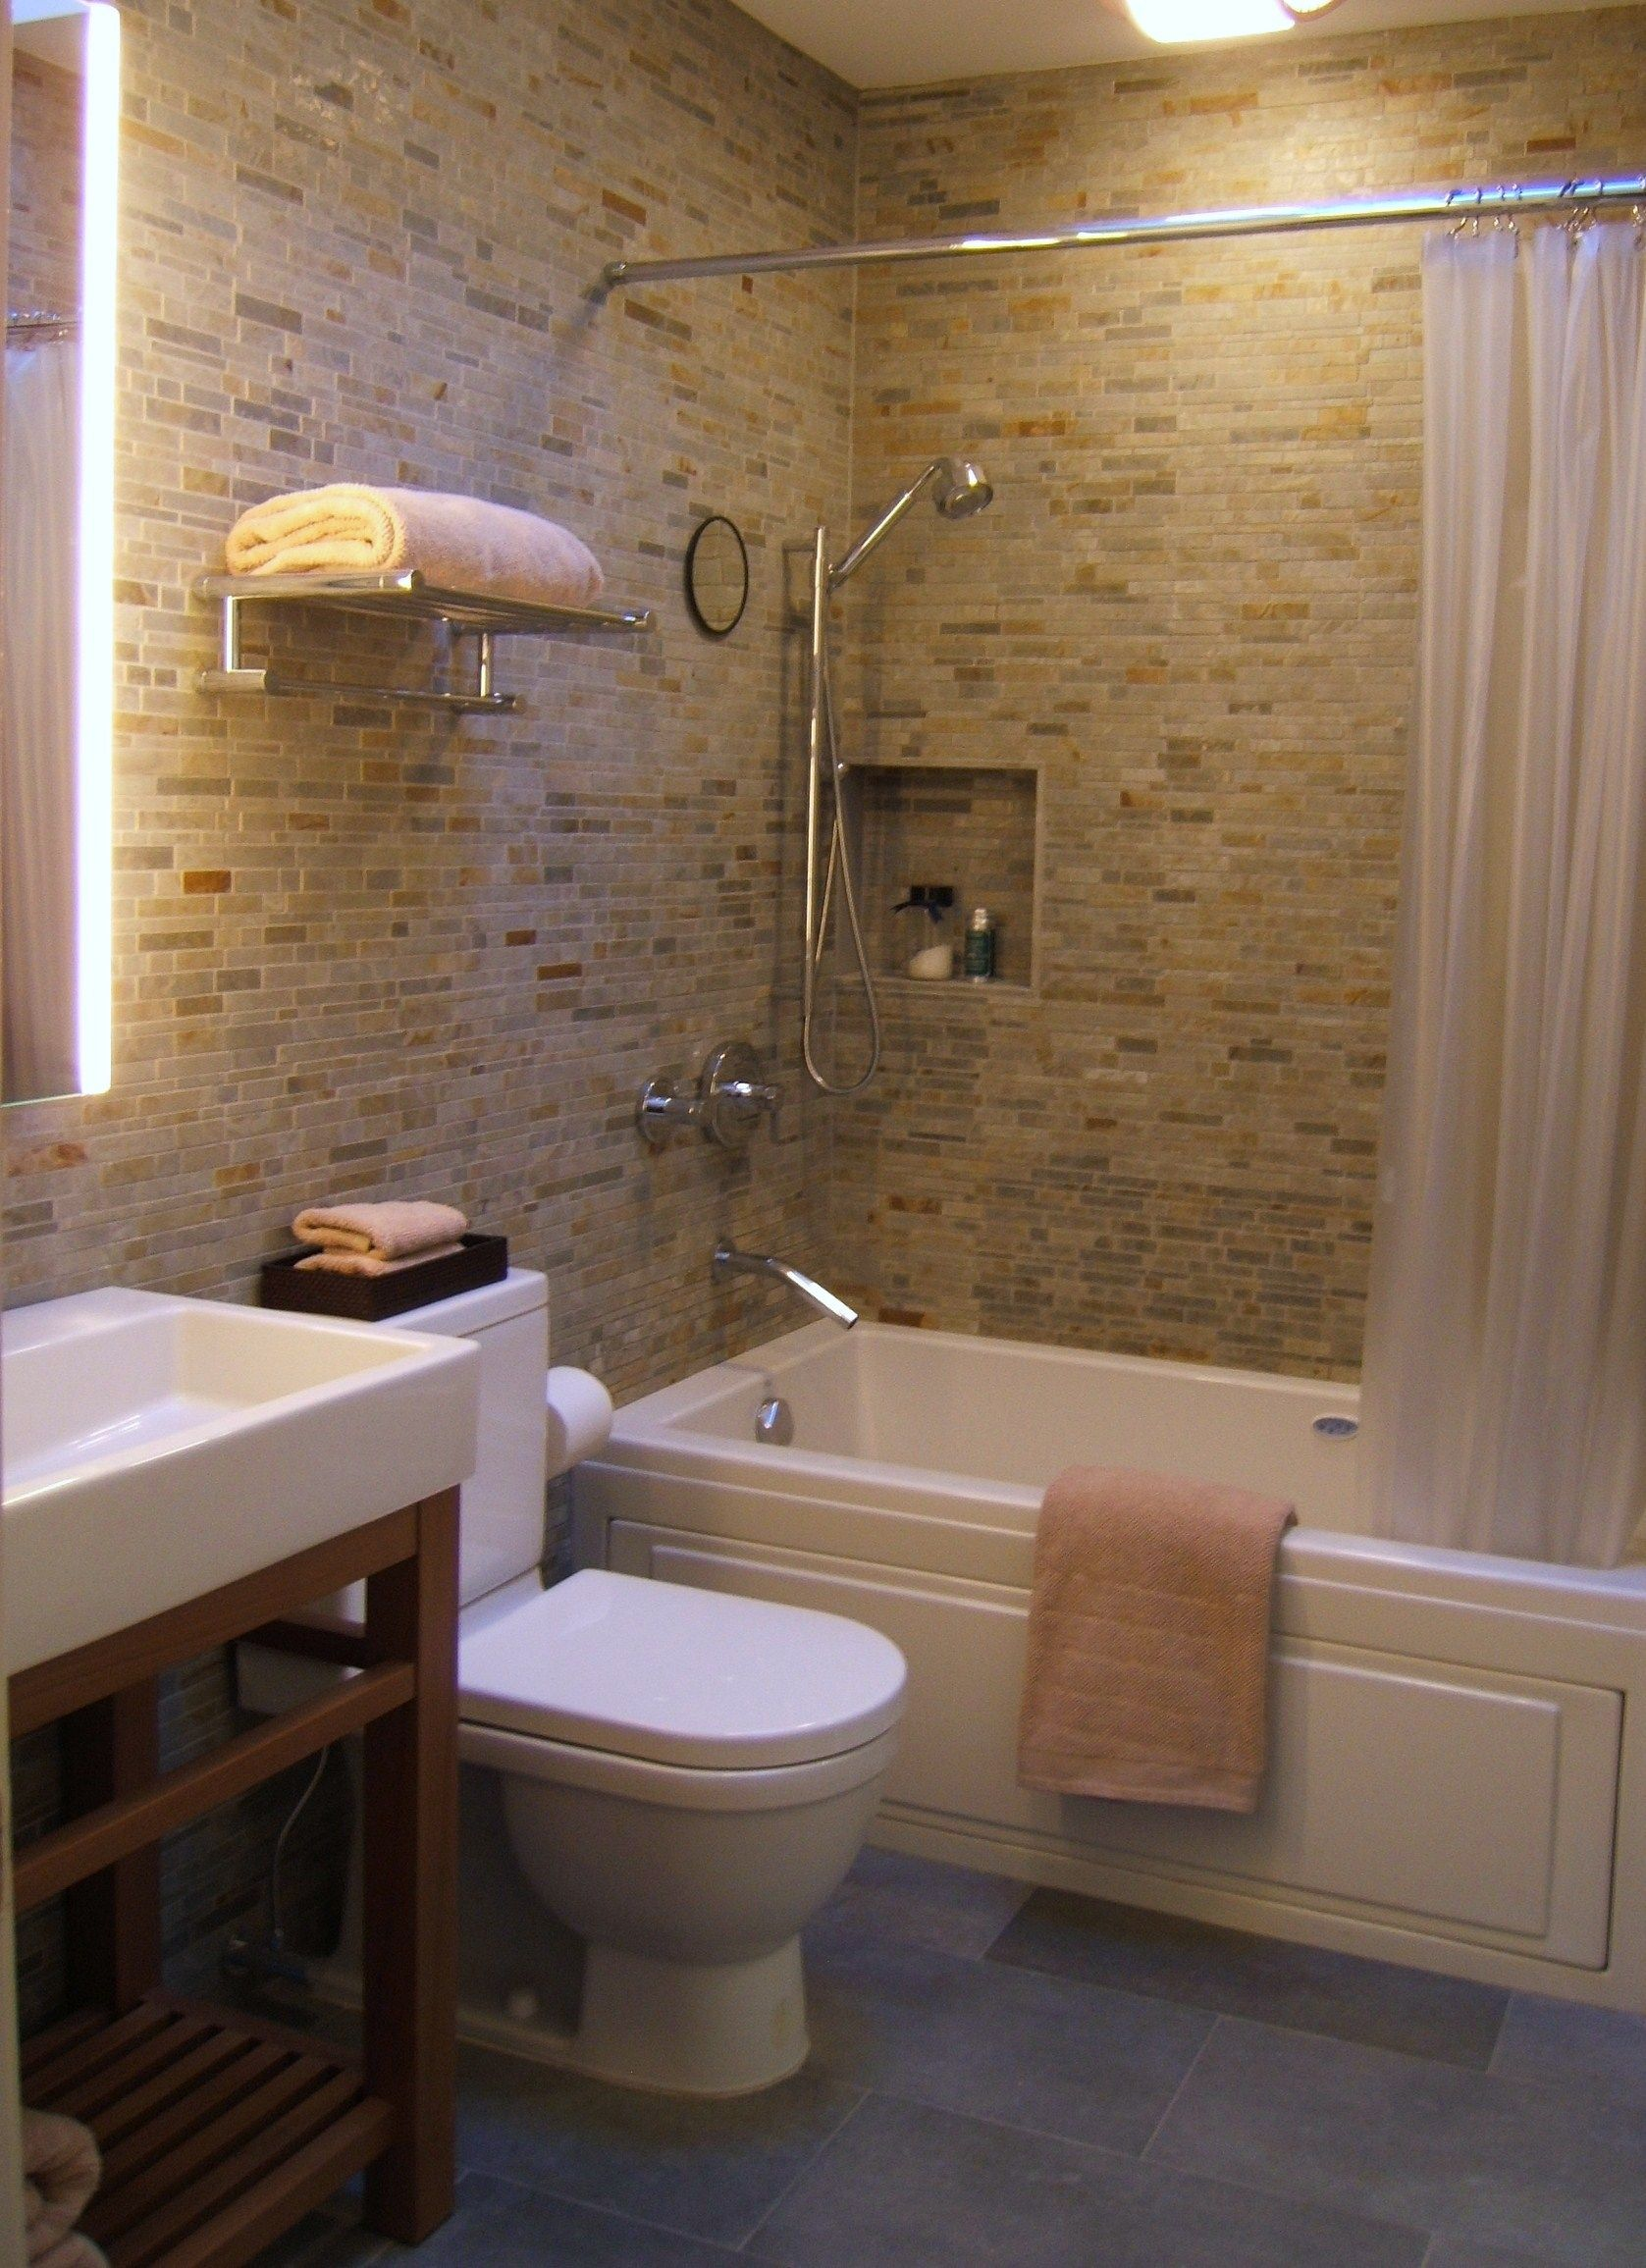 Small bathroom designs south africa small bath for Small bathroom decor ideas pictures